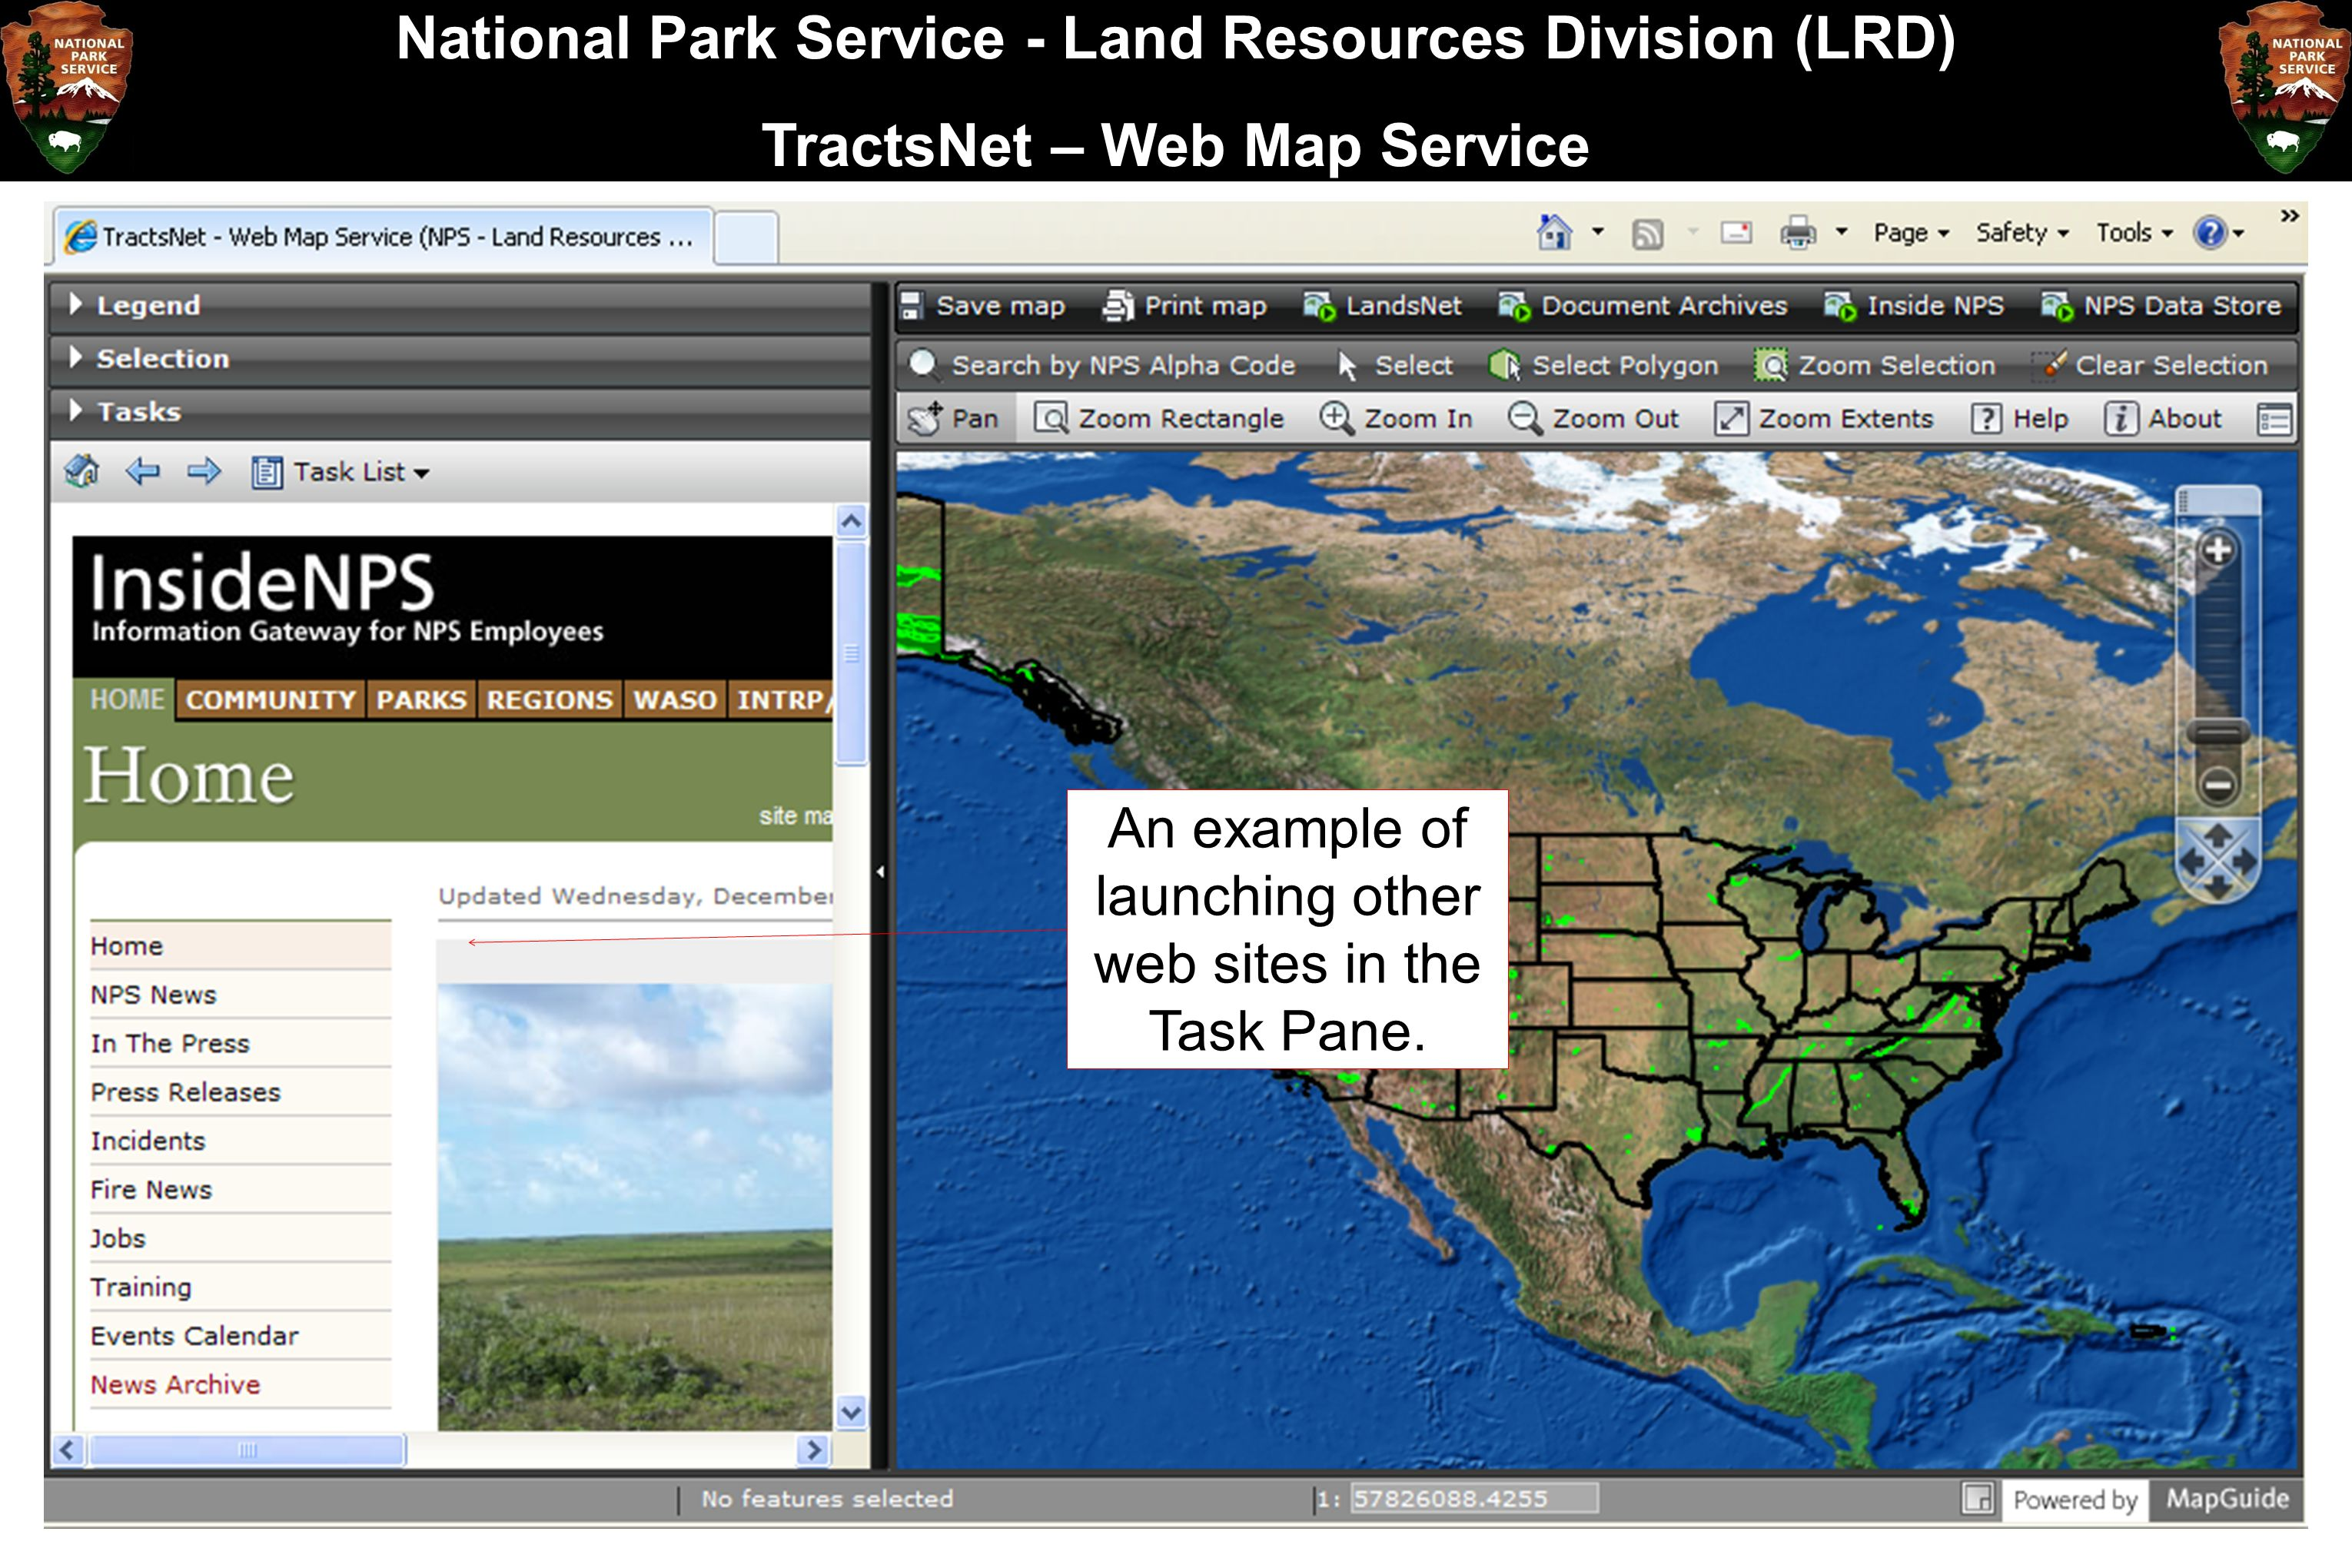 National Park Service - Land Resources Division (LRD) TractsNet – Web Map Service An example of launching other web sites in the Task Pane.